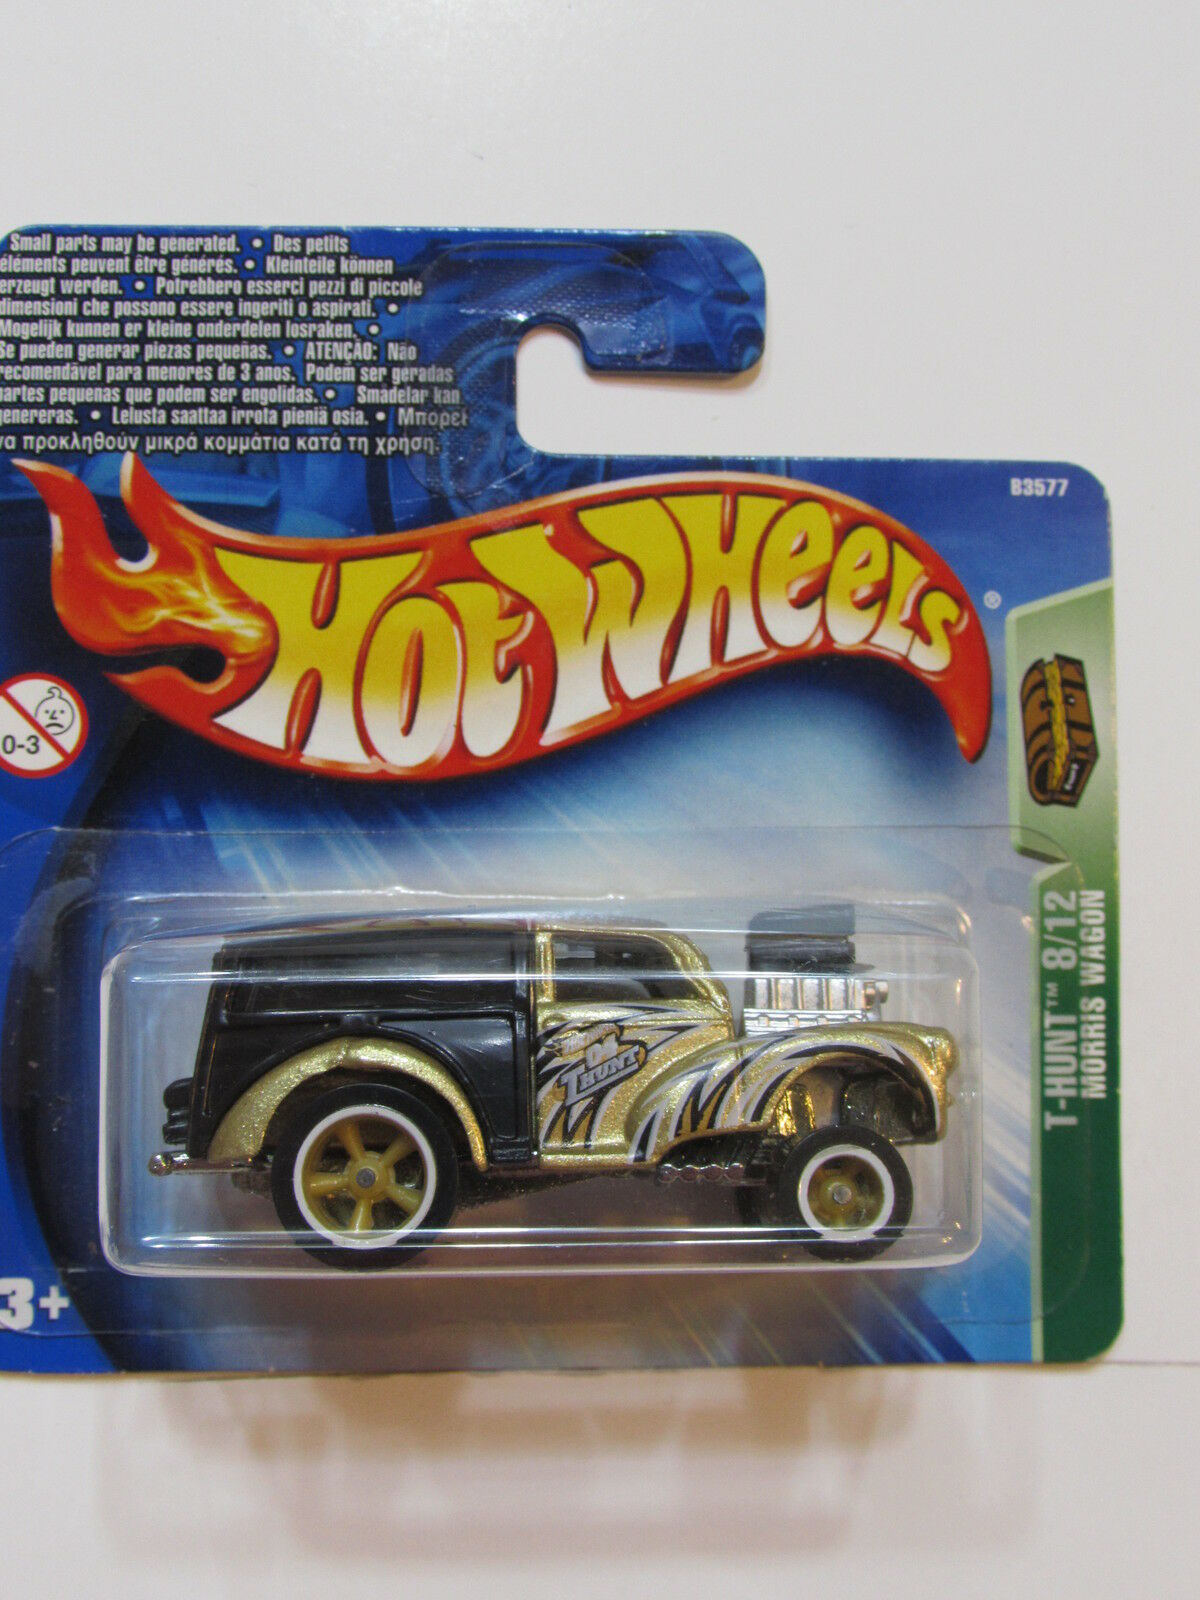 Hedendaags Treasure 2004 Wheels Hot Hunt Shortcard Wagon Morris dpck972823254 IZ-03